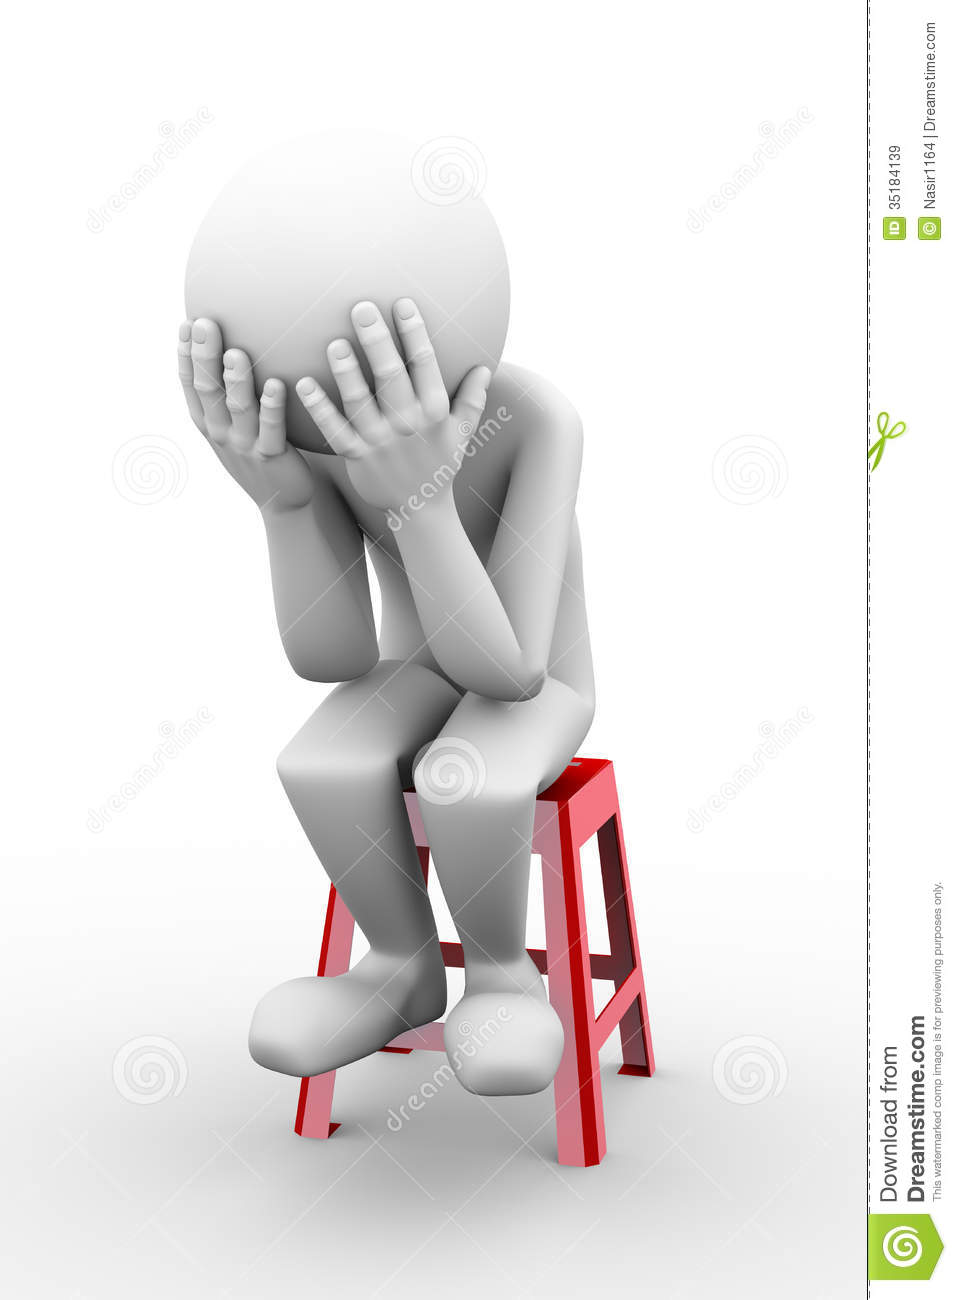 3d Sad Frustrated Man Illustration Royalty Free Stock Images   Image